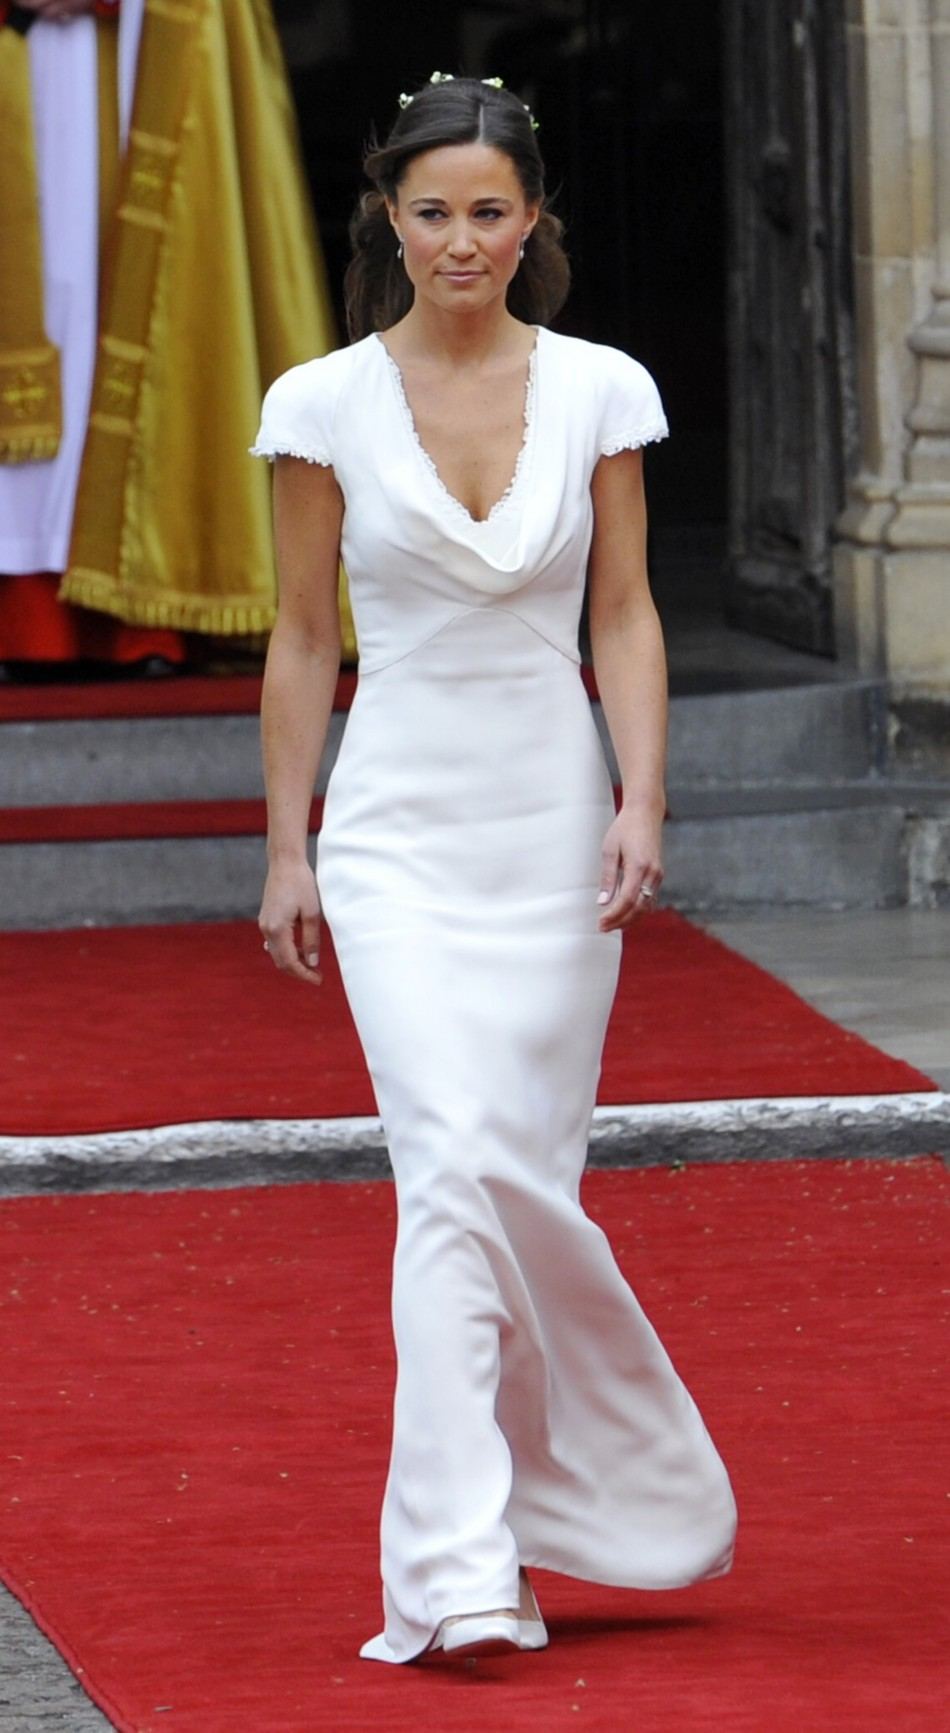 "Younger sister of the Duchess of Cambridge, Pippa Middleton attained ""celebrity status"" with her bridesmaid appearance during the Royal Wedding in April this year."